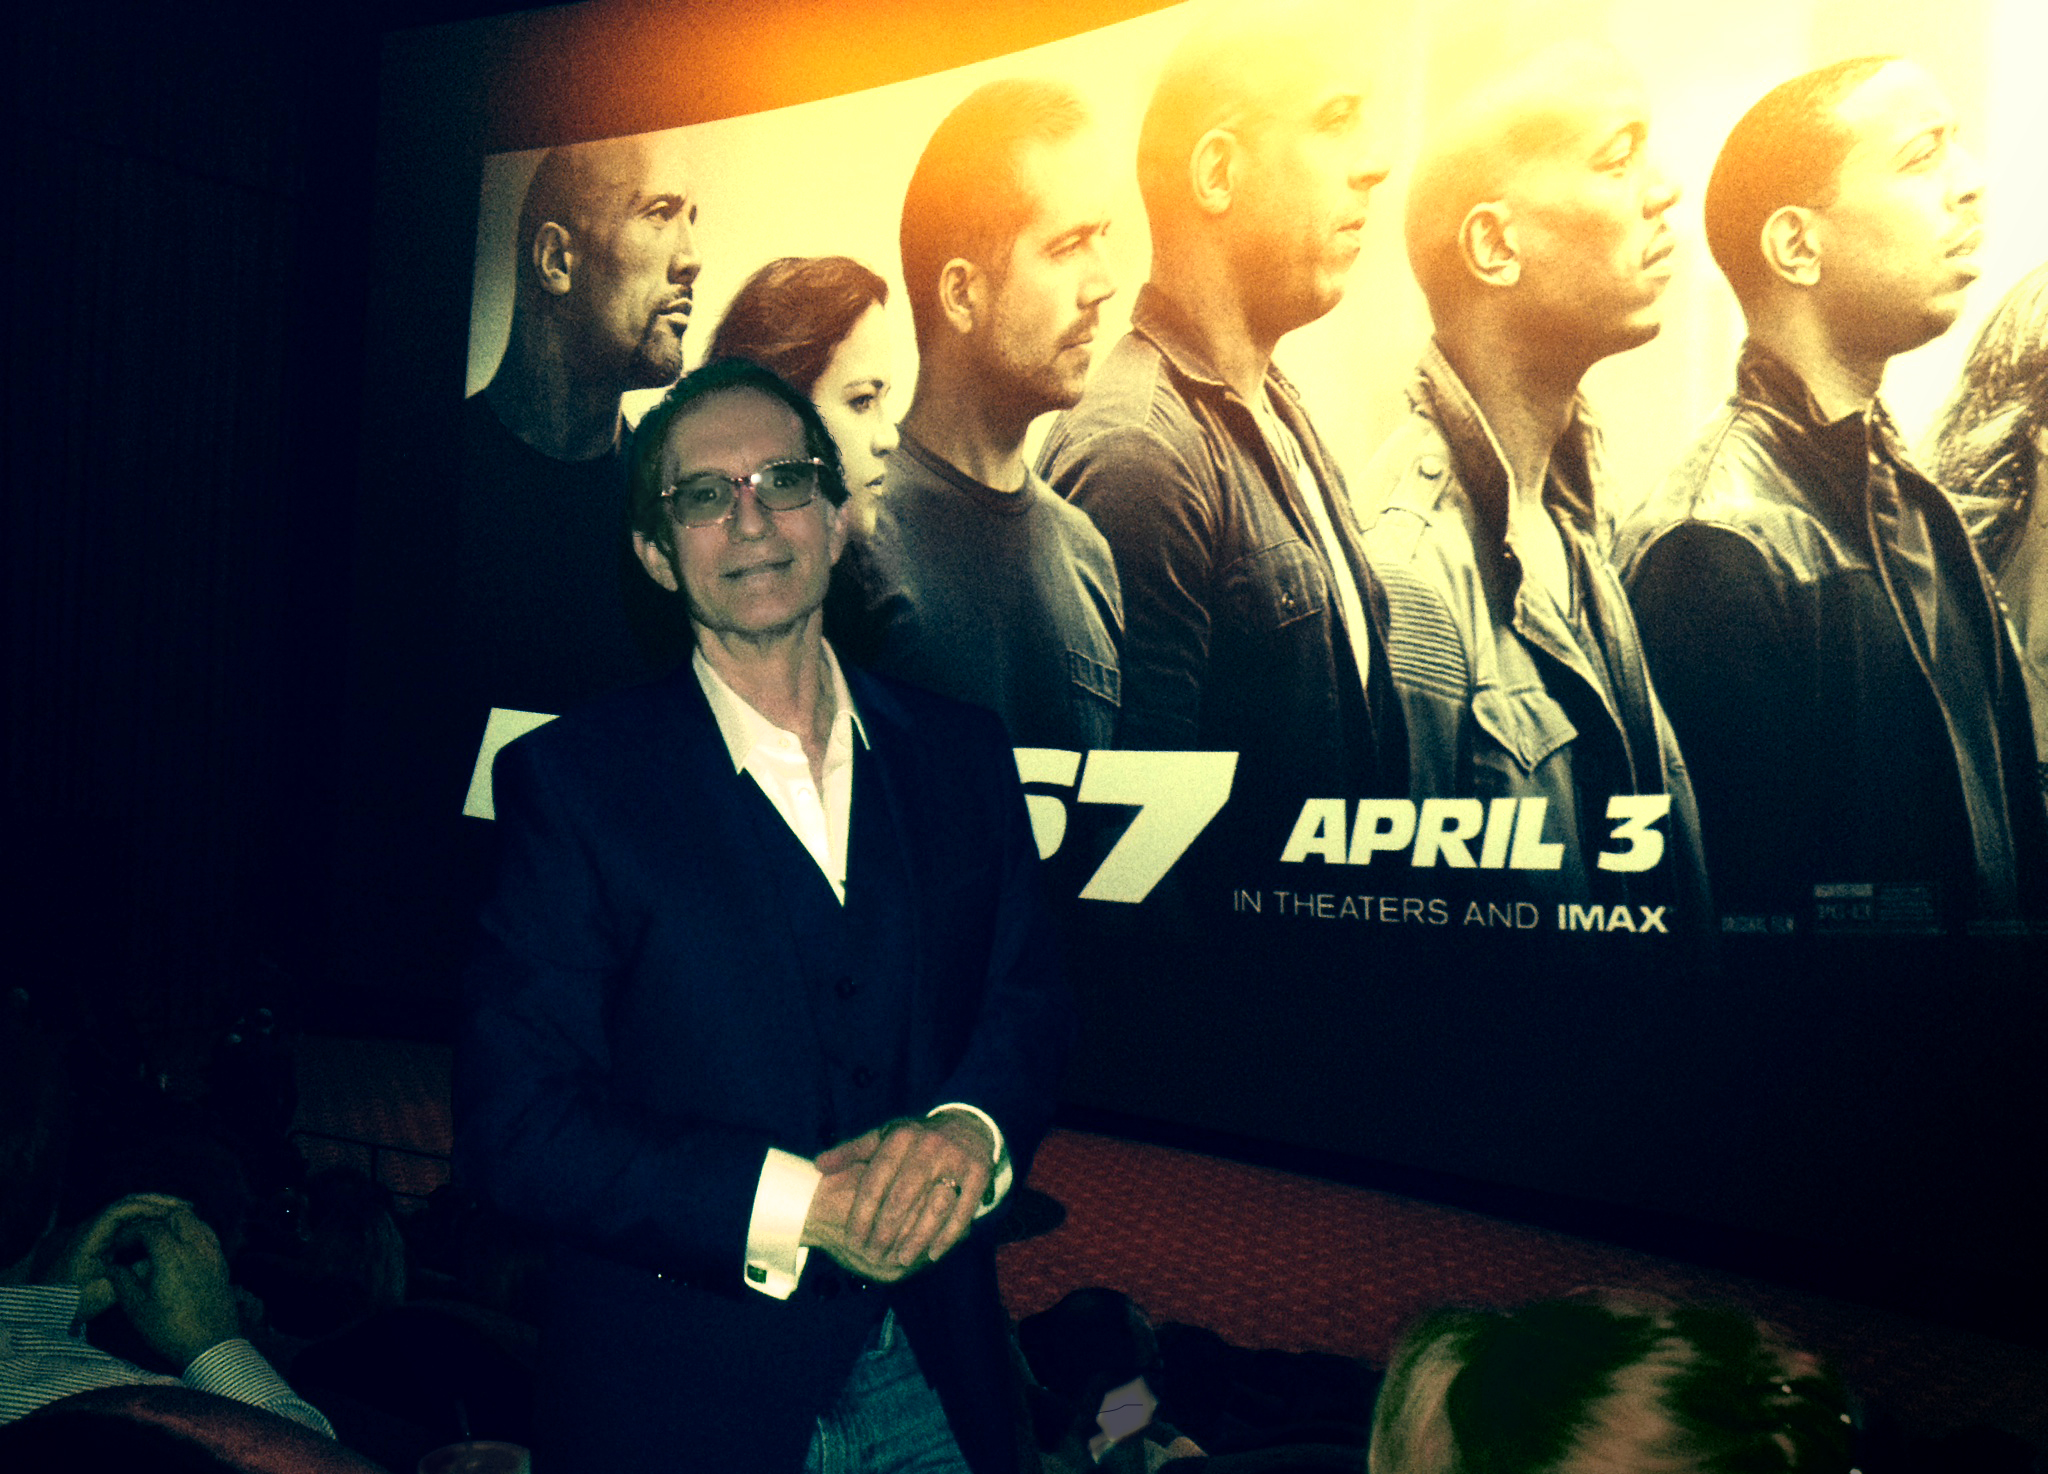 At the Fast 7 Premiere